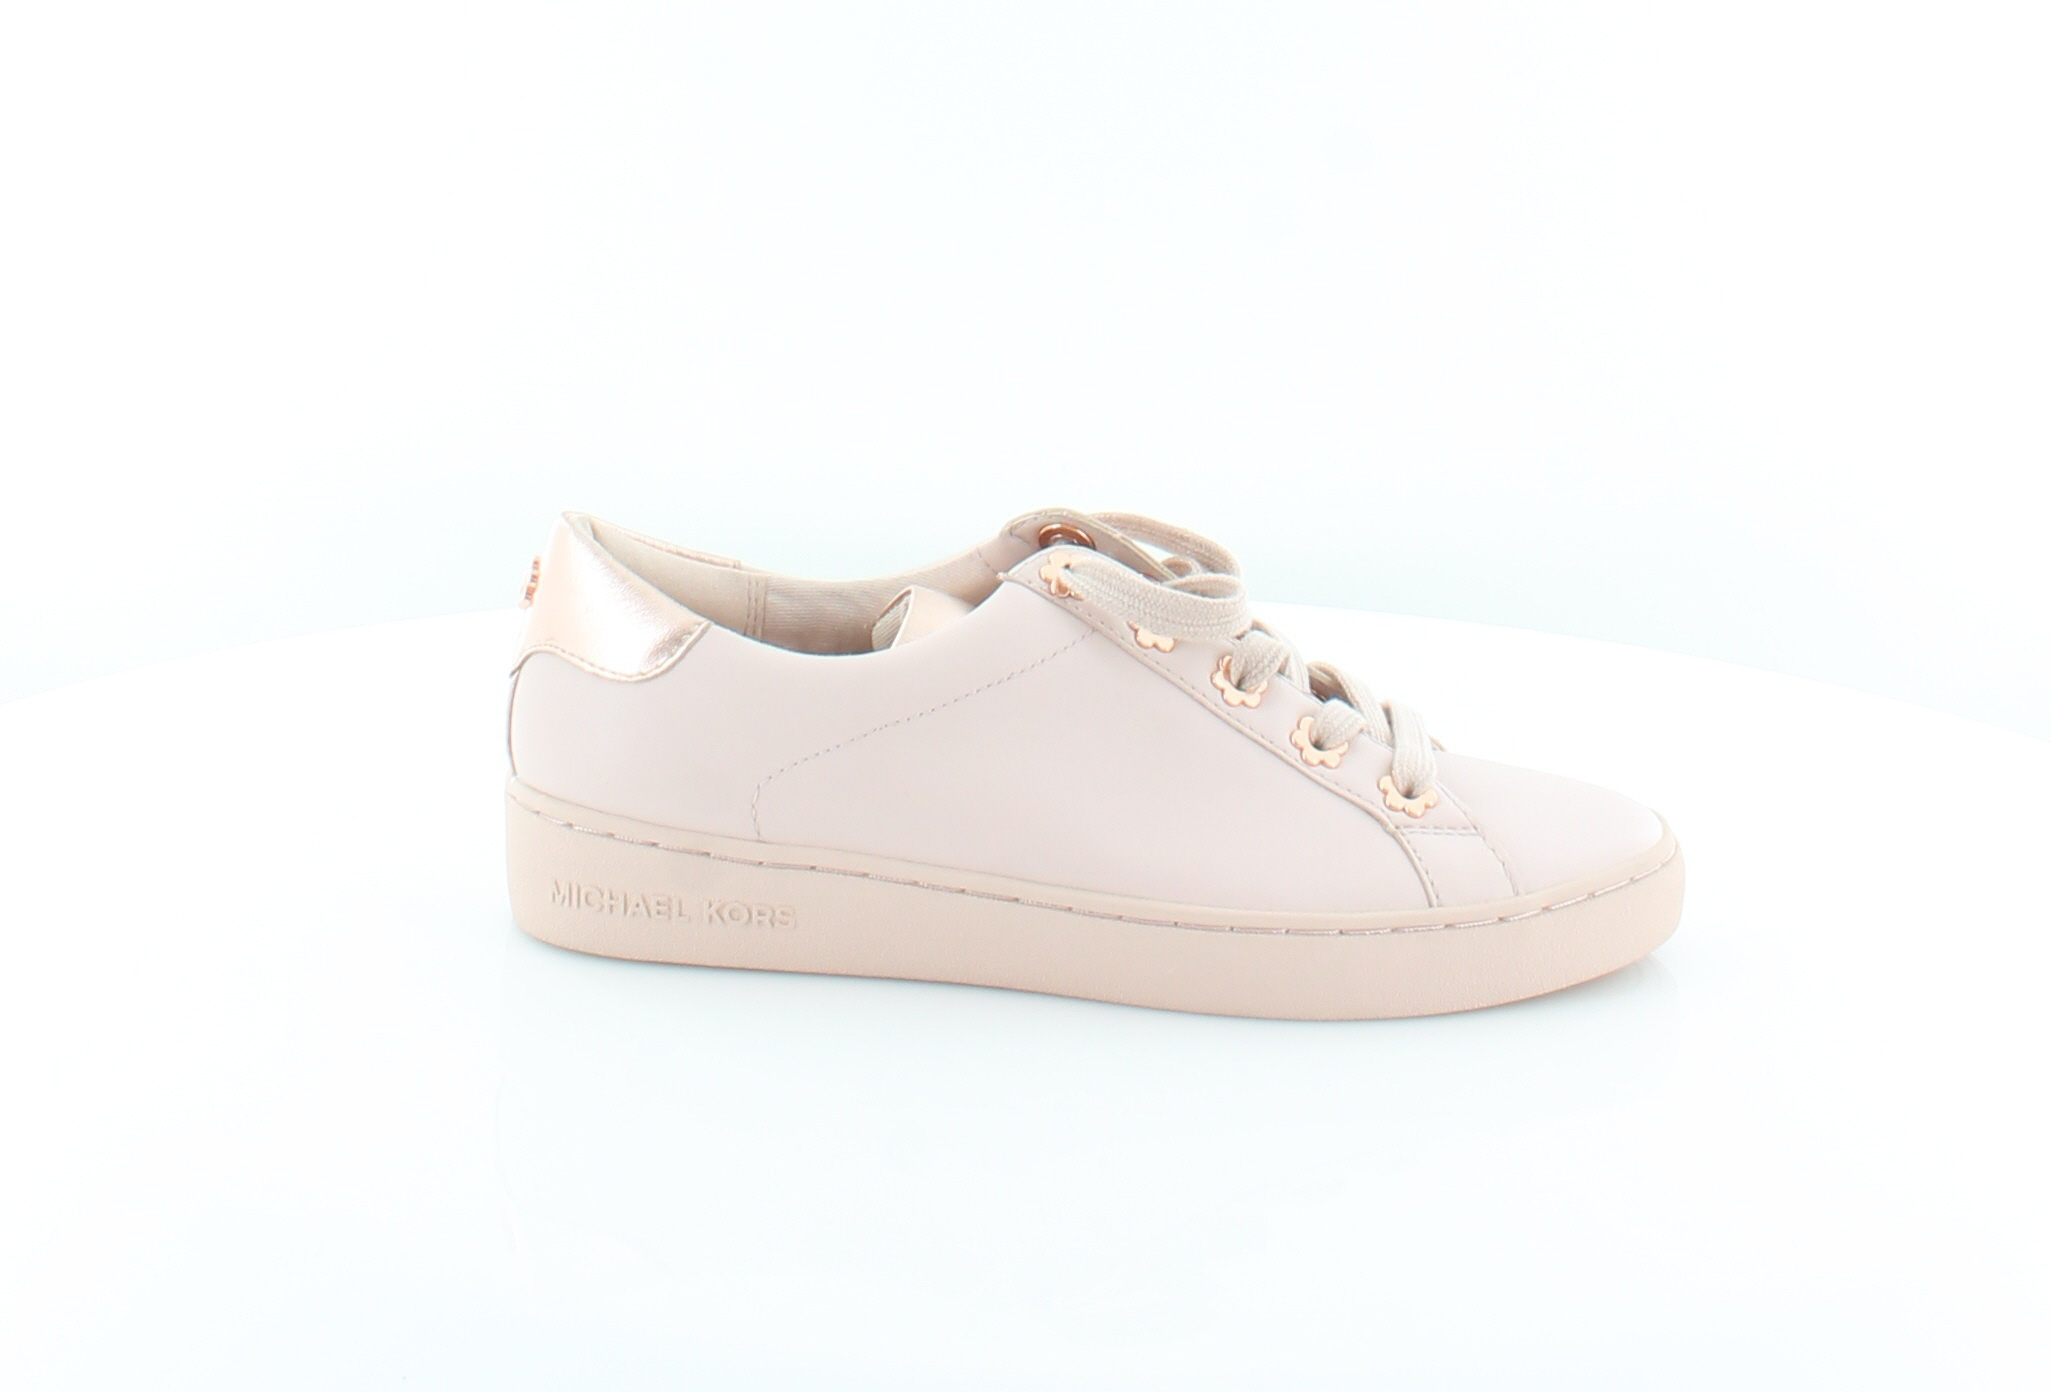 b252e53e9a2e Michael Kors Irving Lace Up Pink Womens Shoes 6 M Fashion Sneakers ...